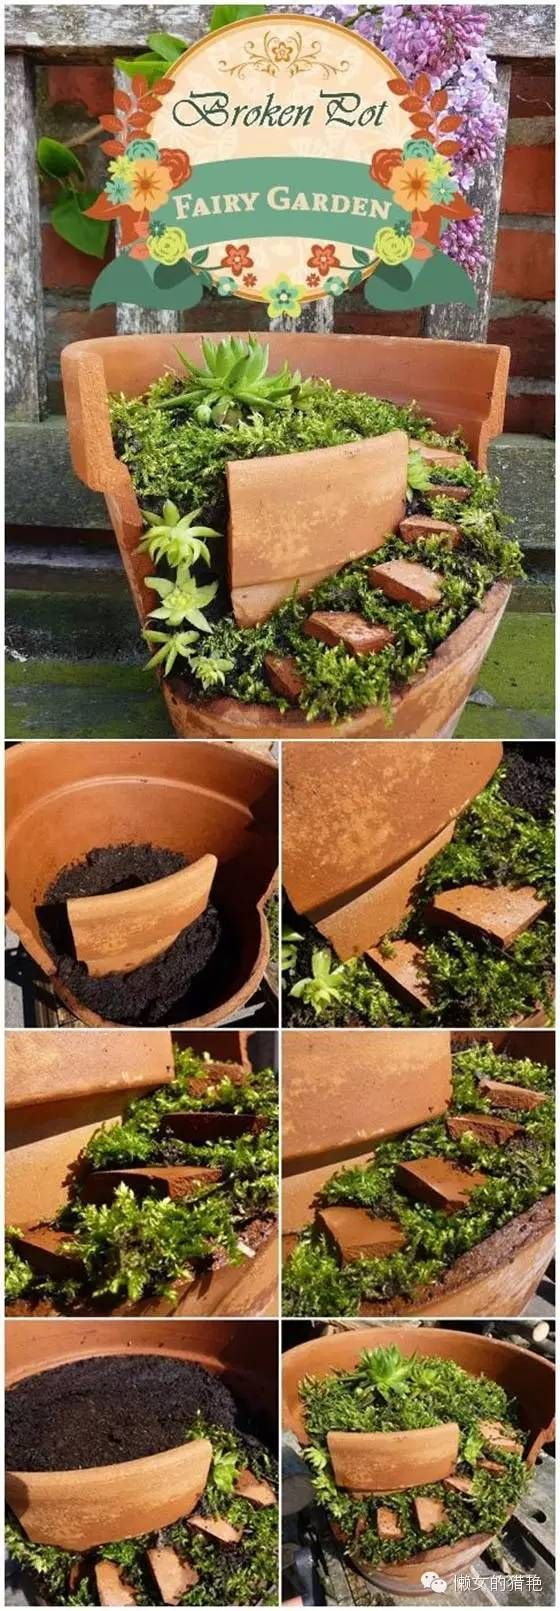 12 ideas originales para crear un jard n de hadas for Jardines originales